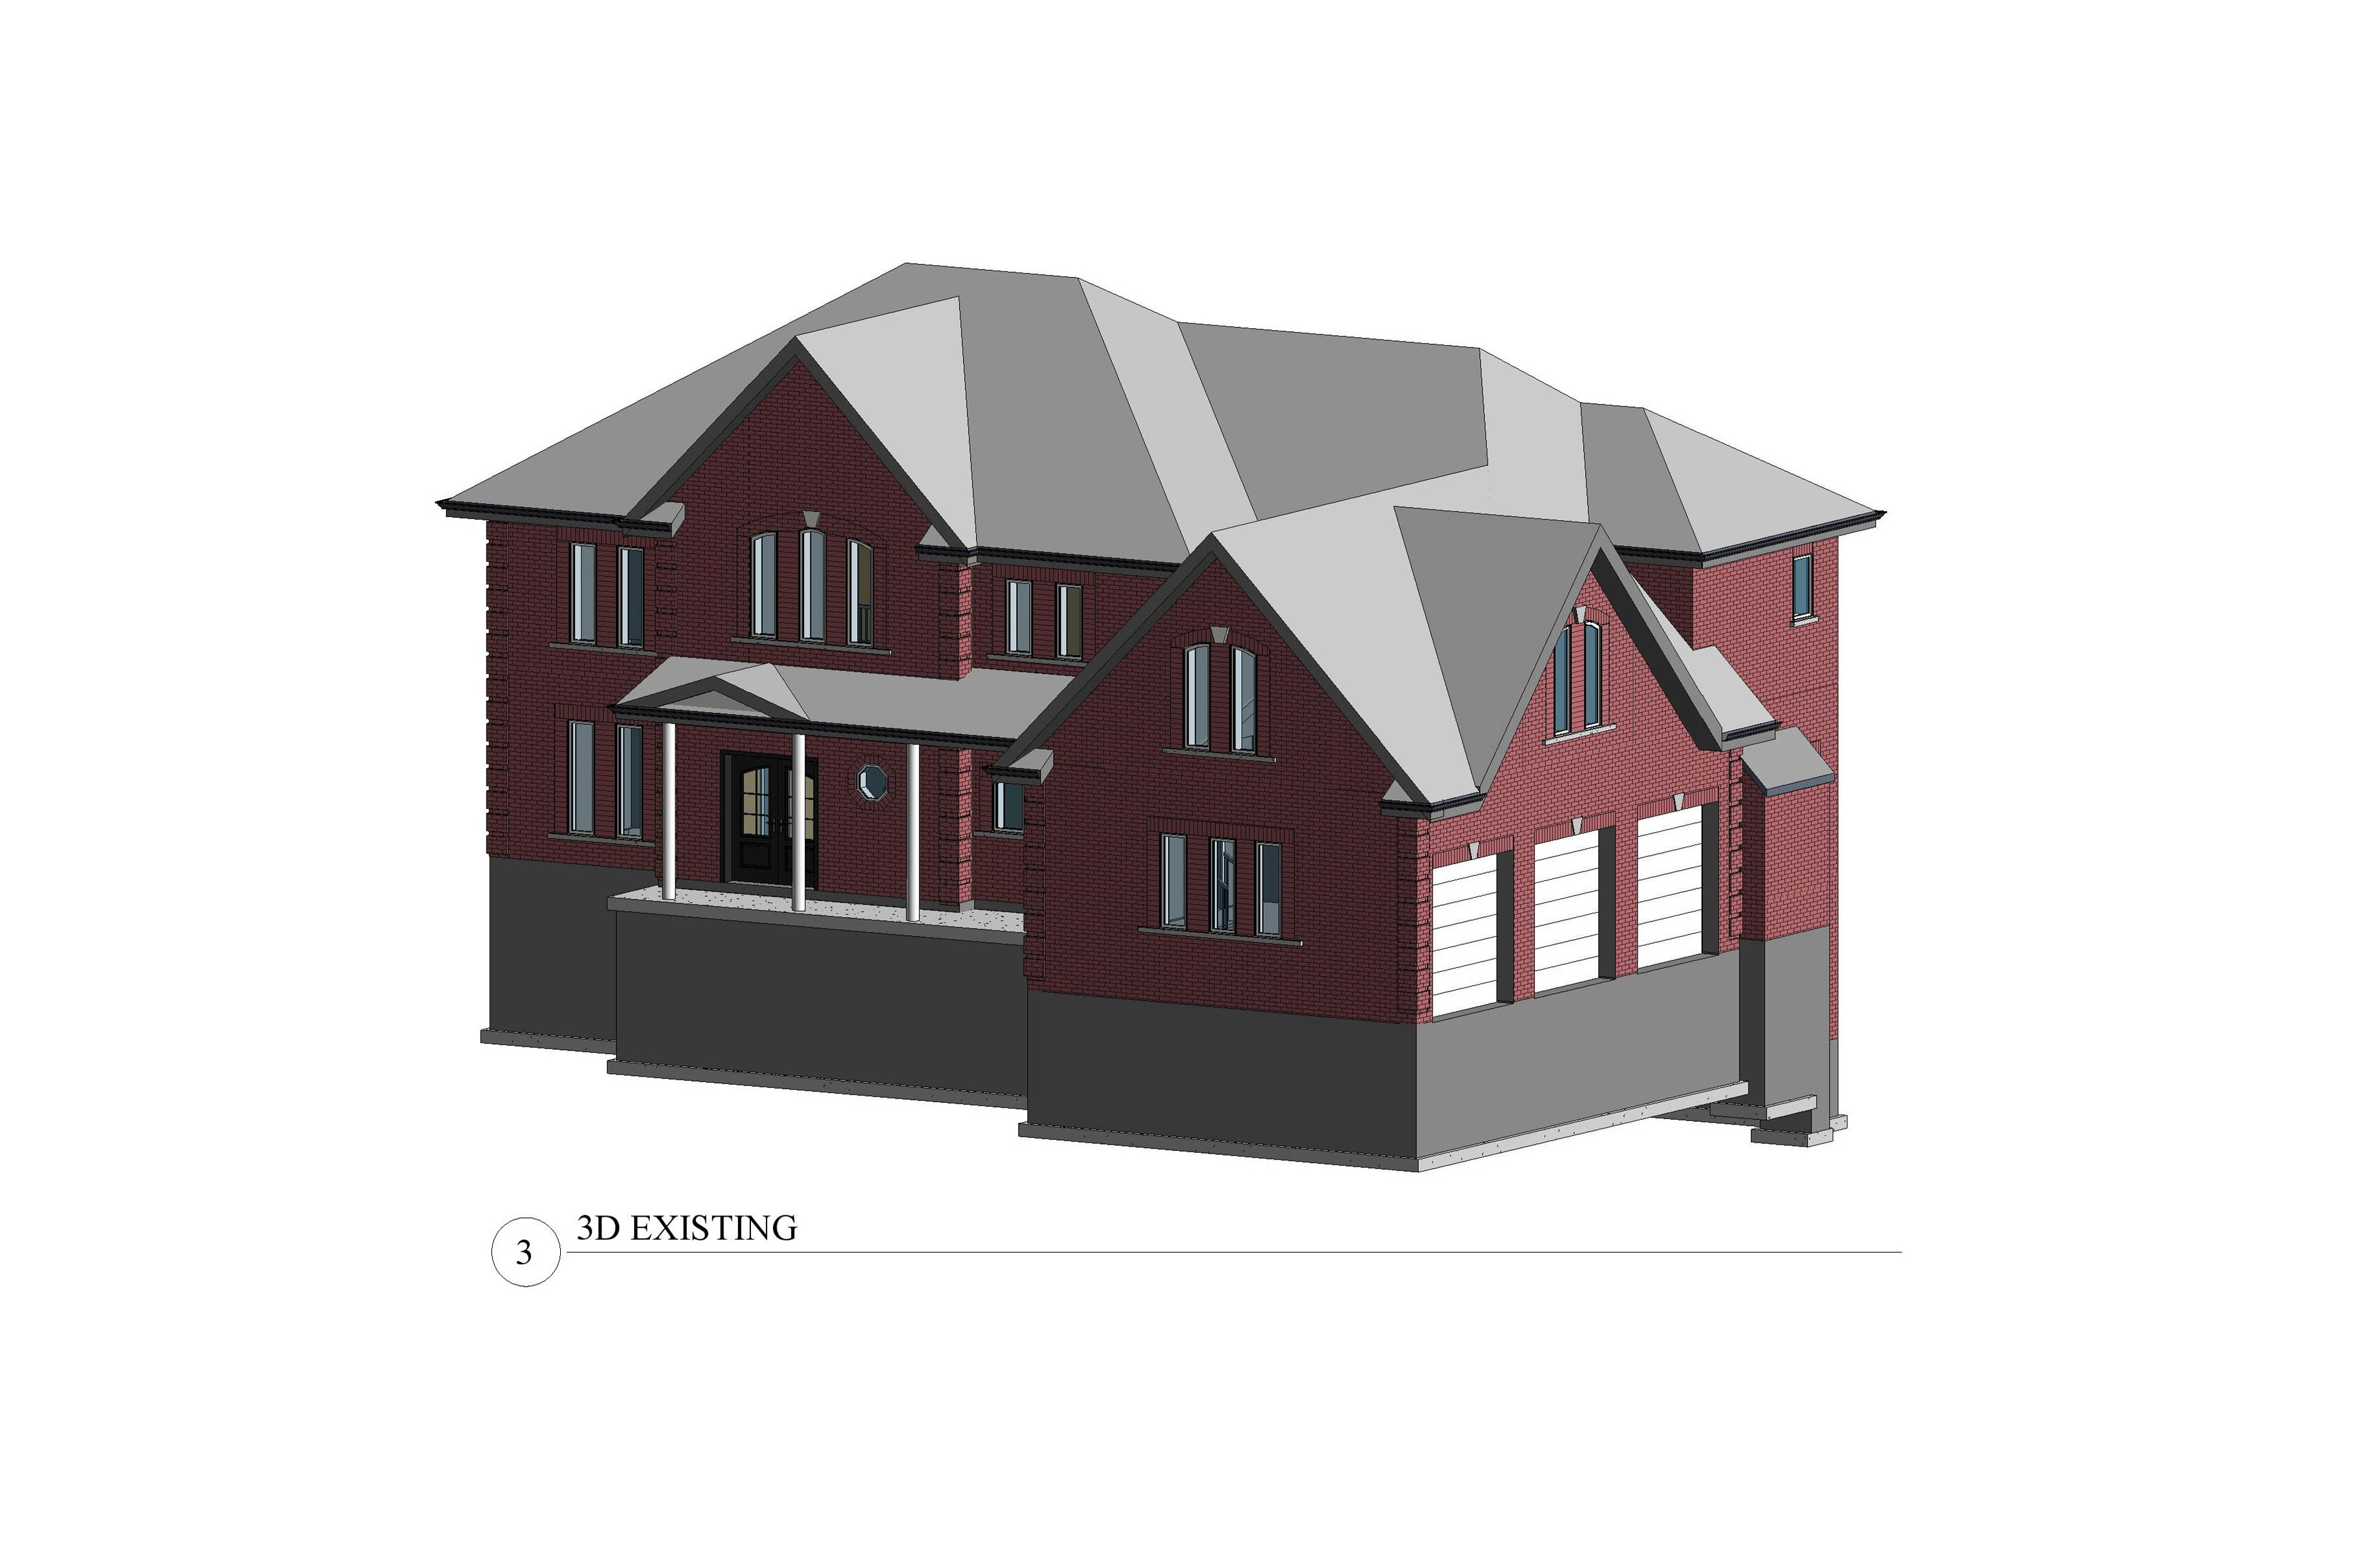 a 3D model of the existing house.